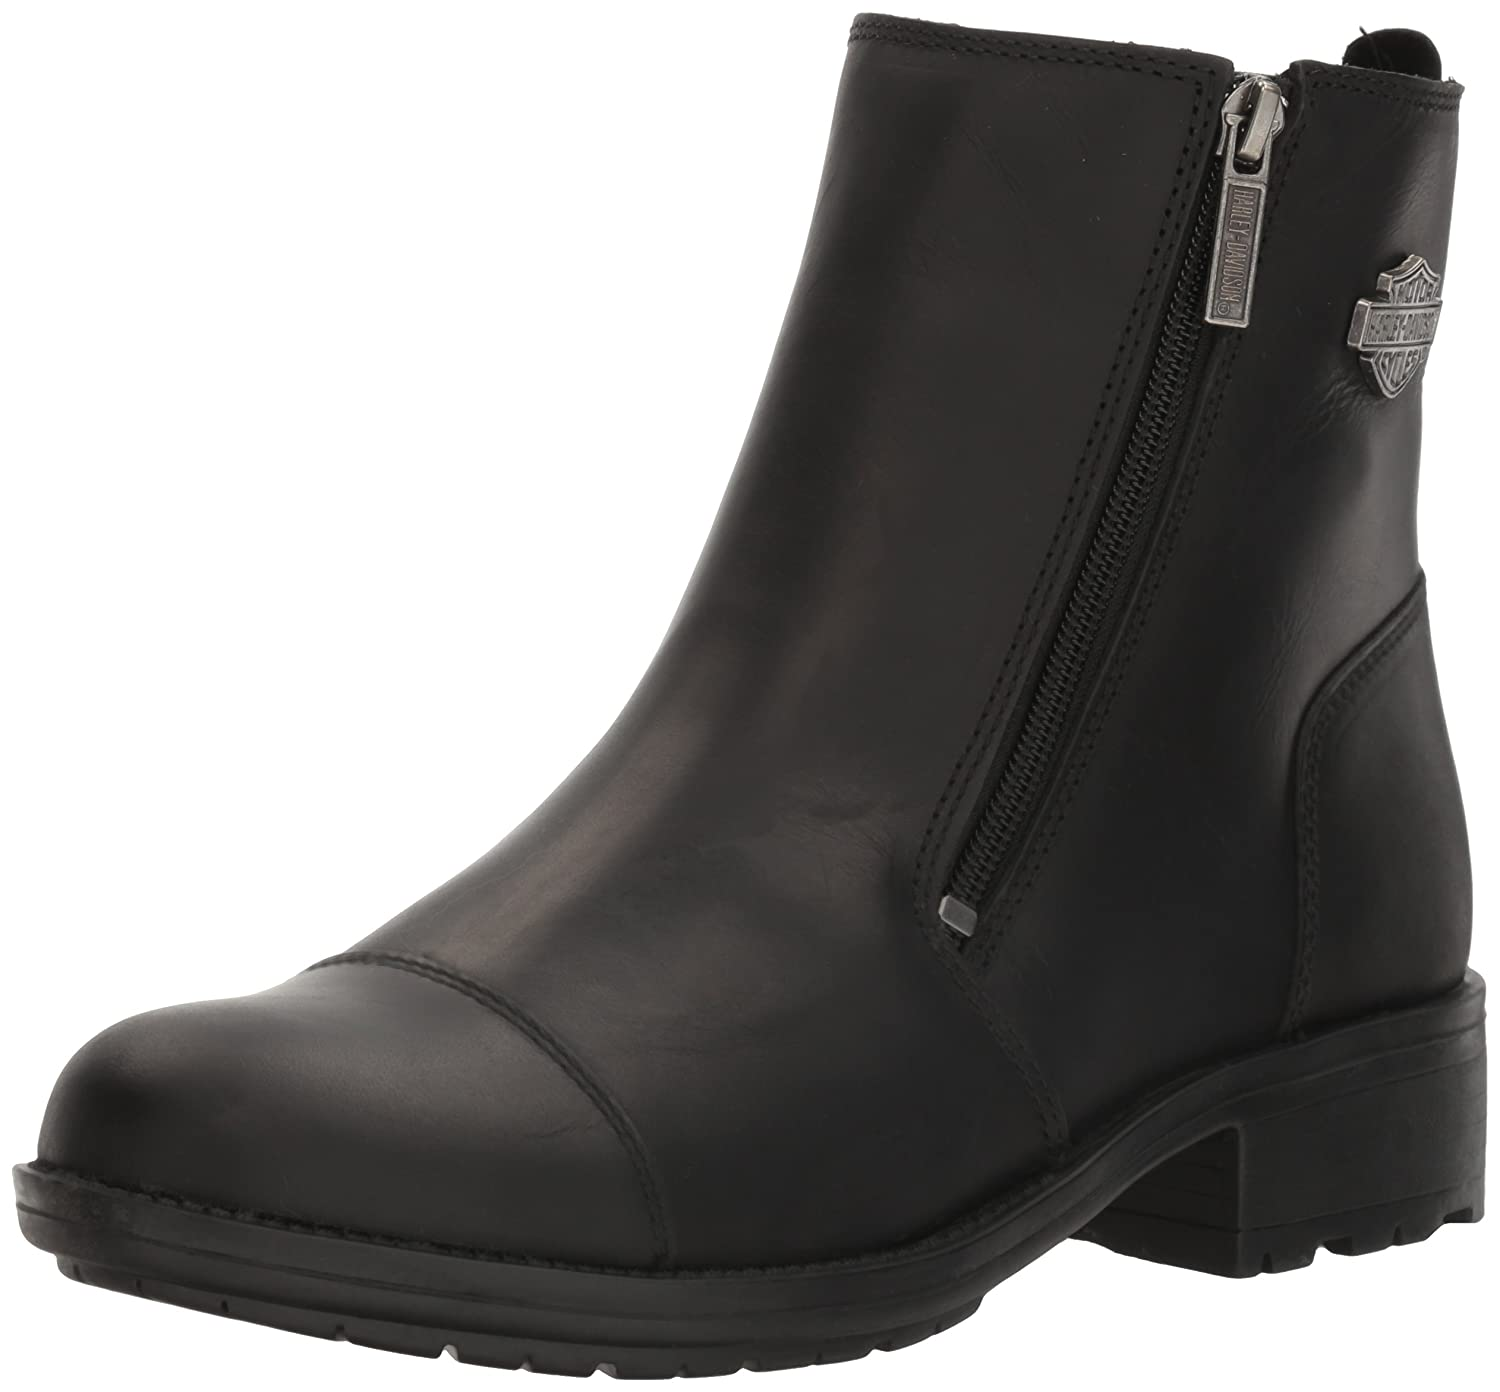 Harley-Davidson Women's Senter Work Boot B01KVUTHHK 9 B(M) US|Black